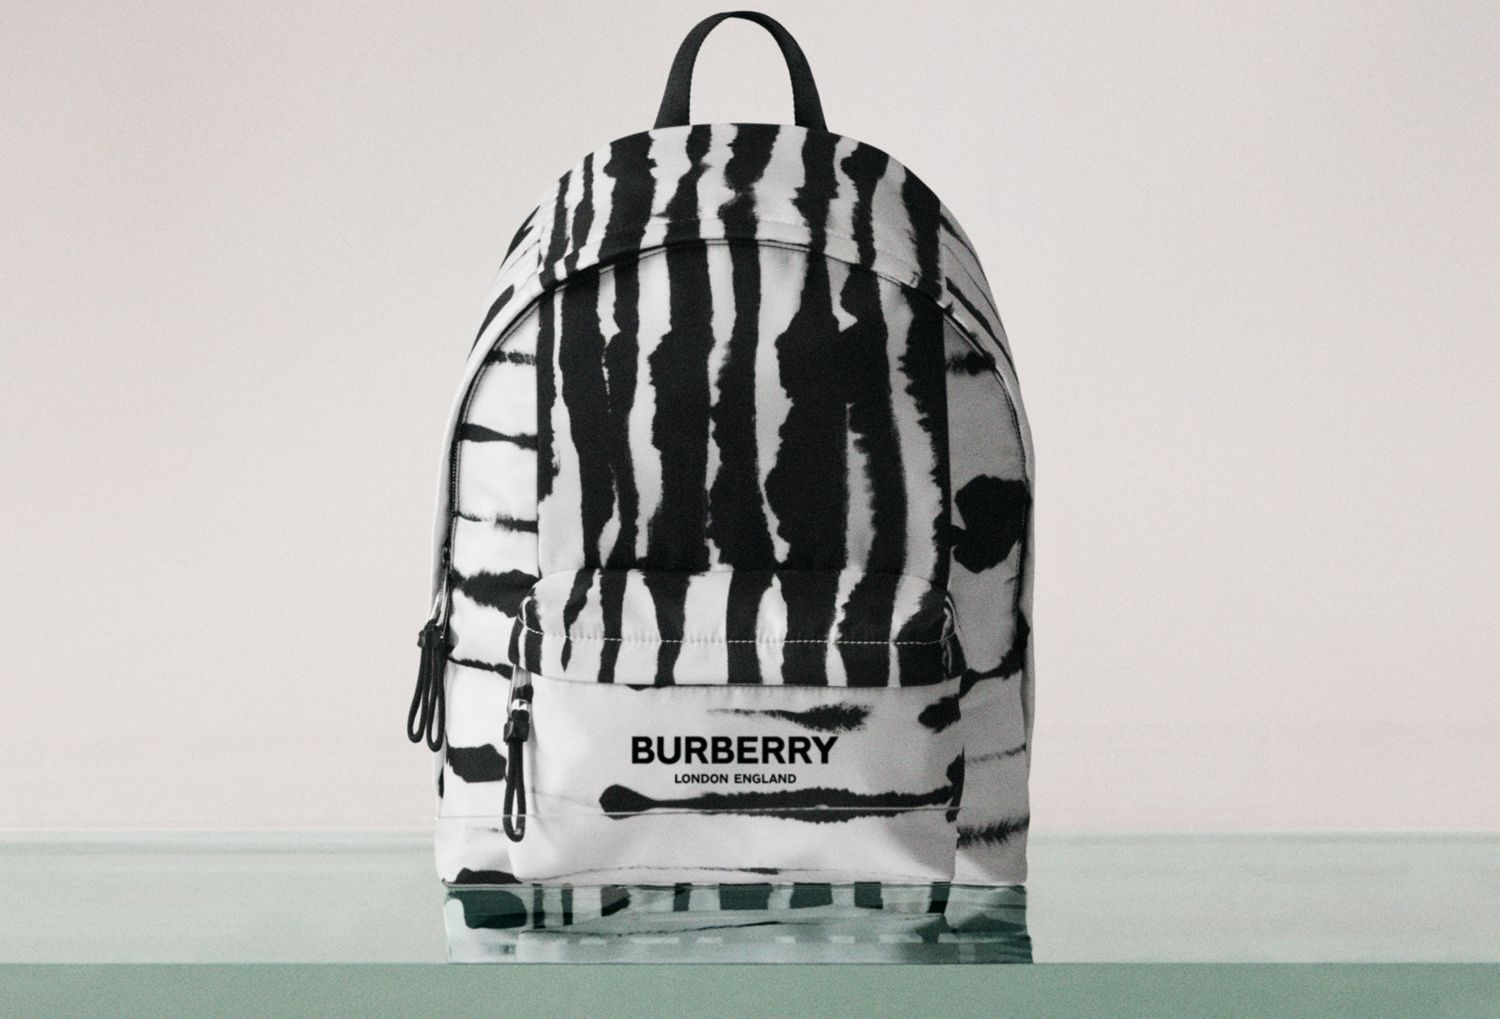 The ReBurberry Edit